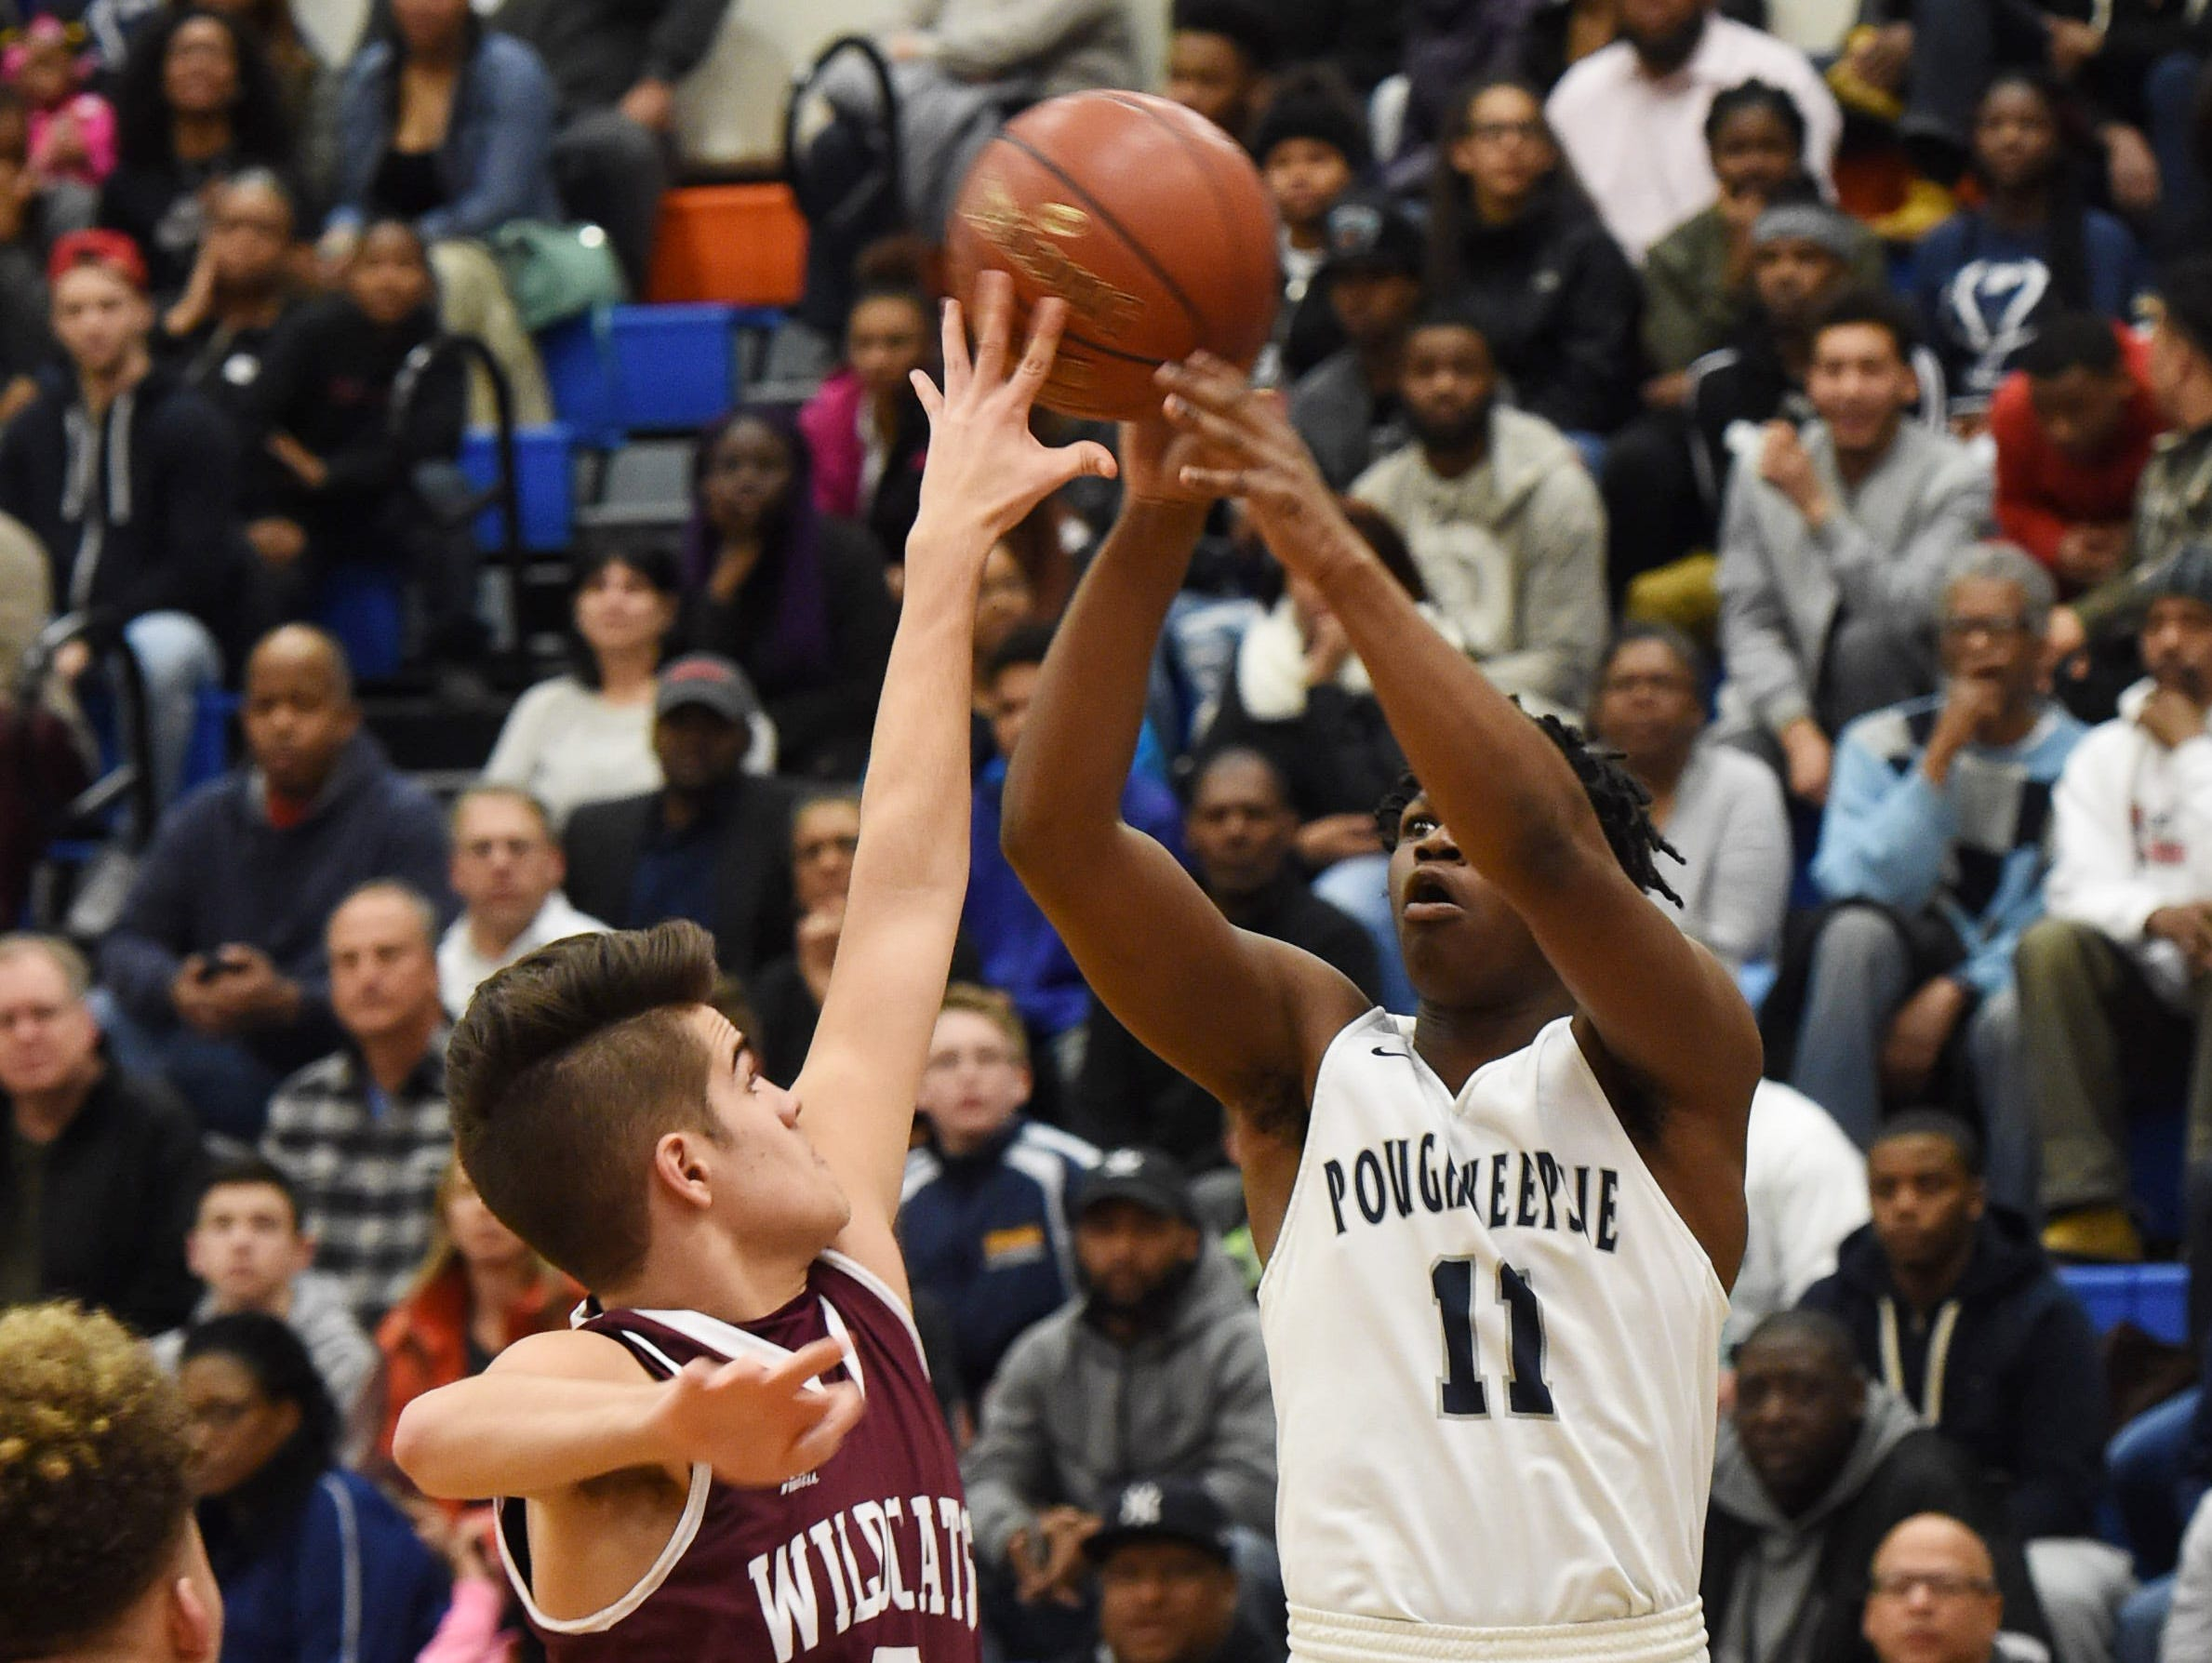 Poughkeepsie High School's Anatwone West, right, takes a shot while Johnson City's Alec Lopez, left, defends during the Class A regional semifinal game at SUNY New Paltz.